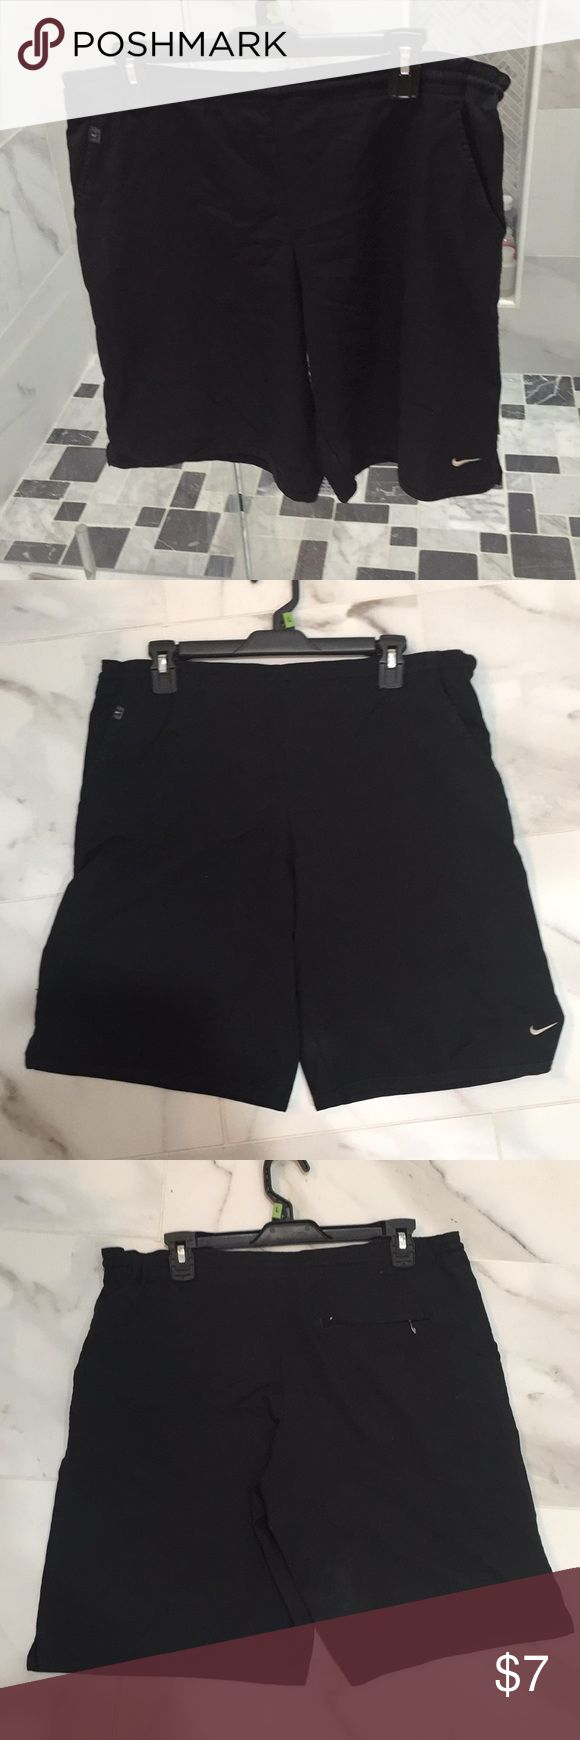 Nike Dri-Fit Shorts Nike Dri-Fit shorts men's size Large. Good condition but does have some marks on them shown in pictures Nike Shorts Athletic